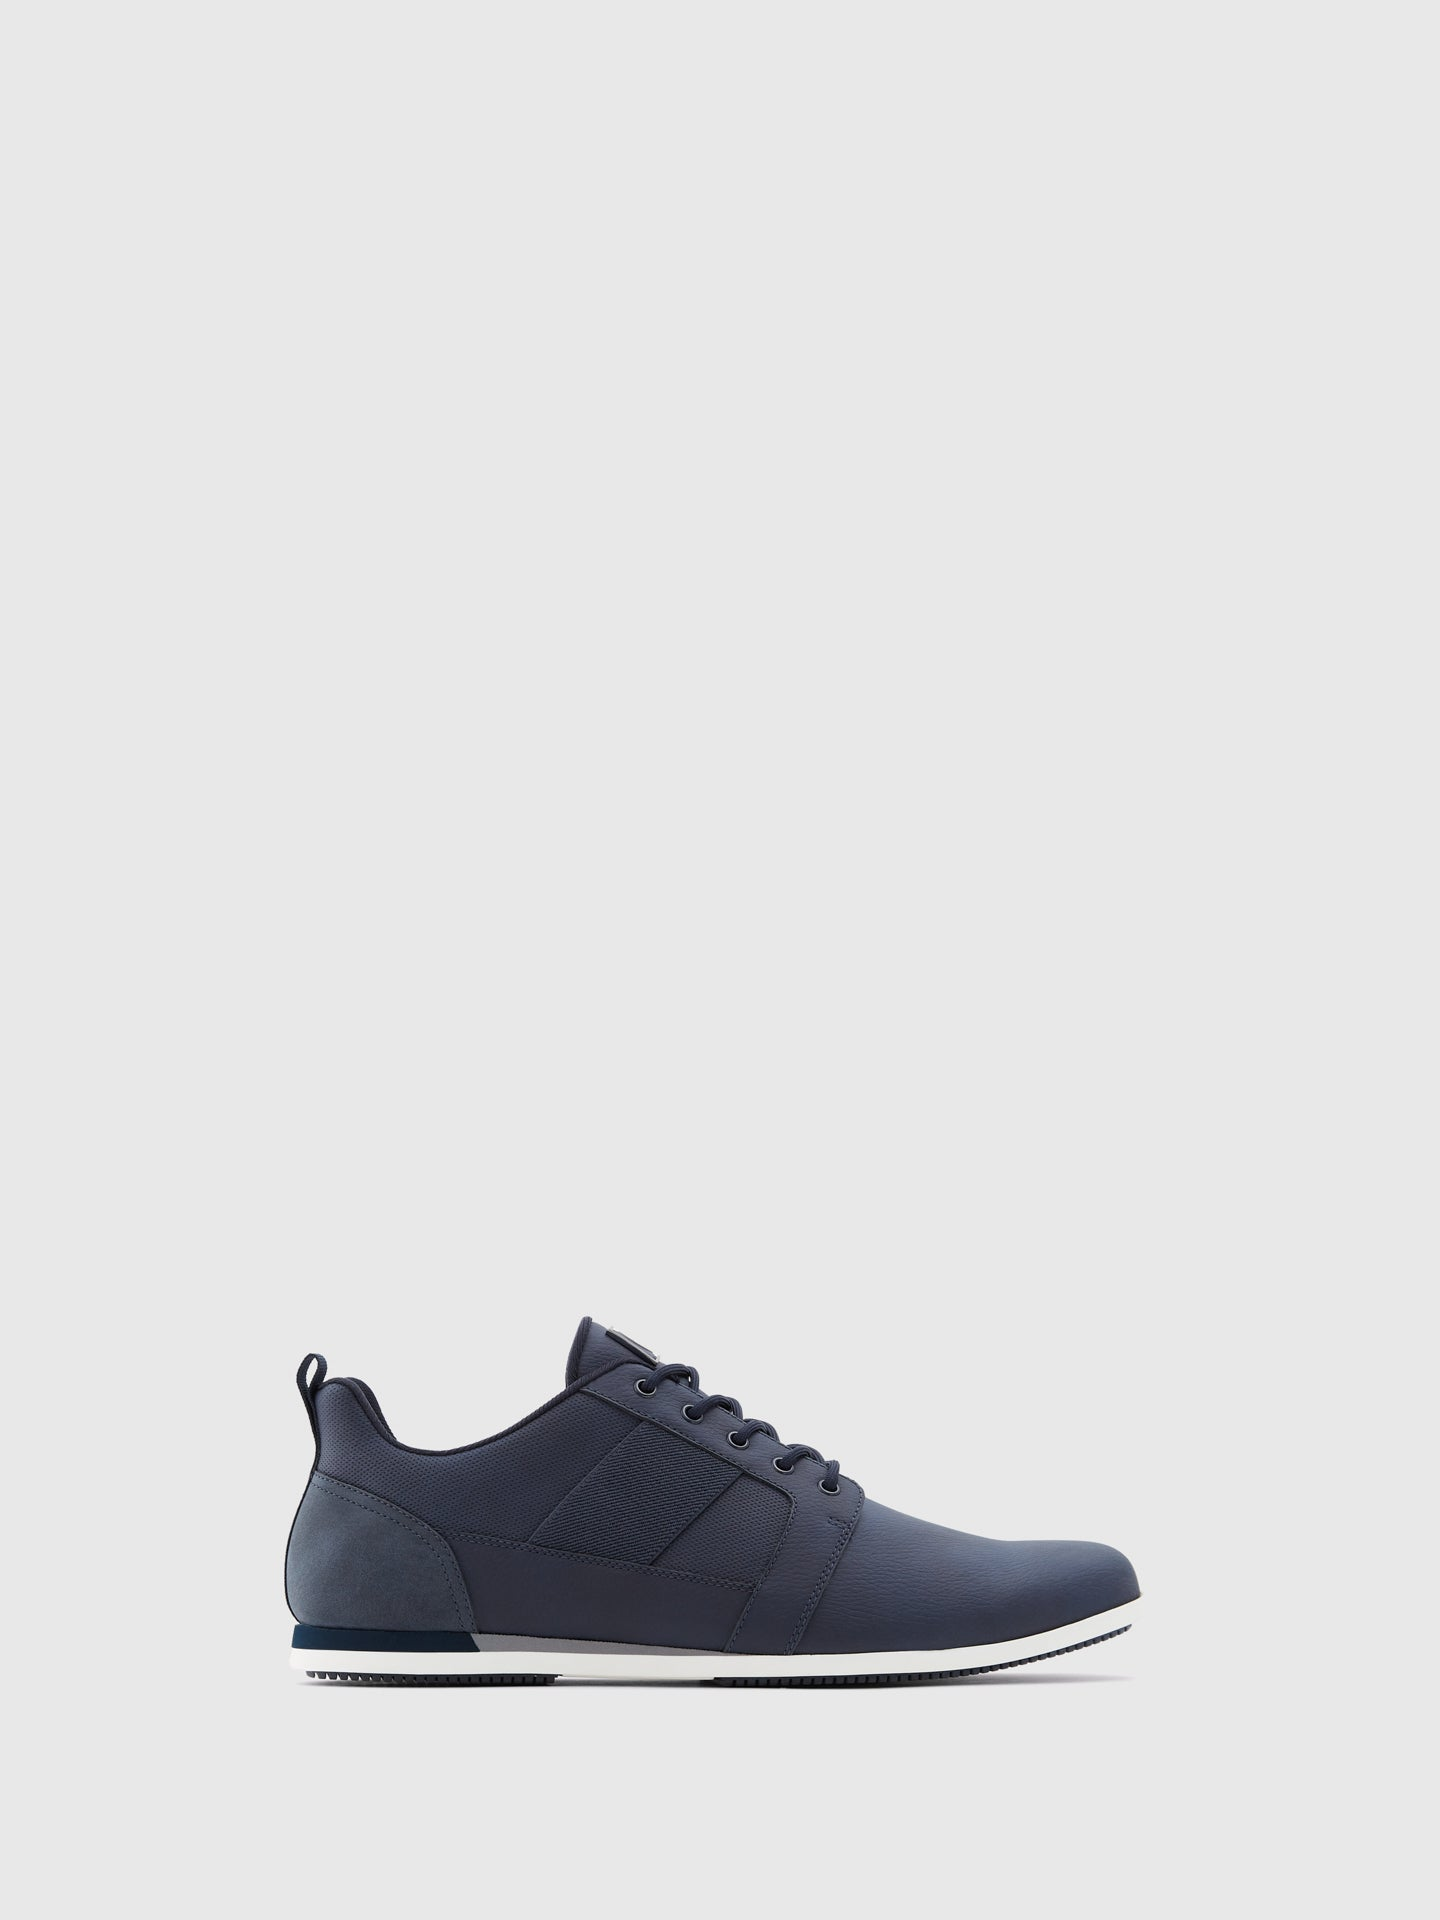 Aldo Blue Lace-up Trainers